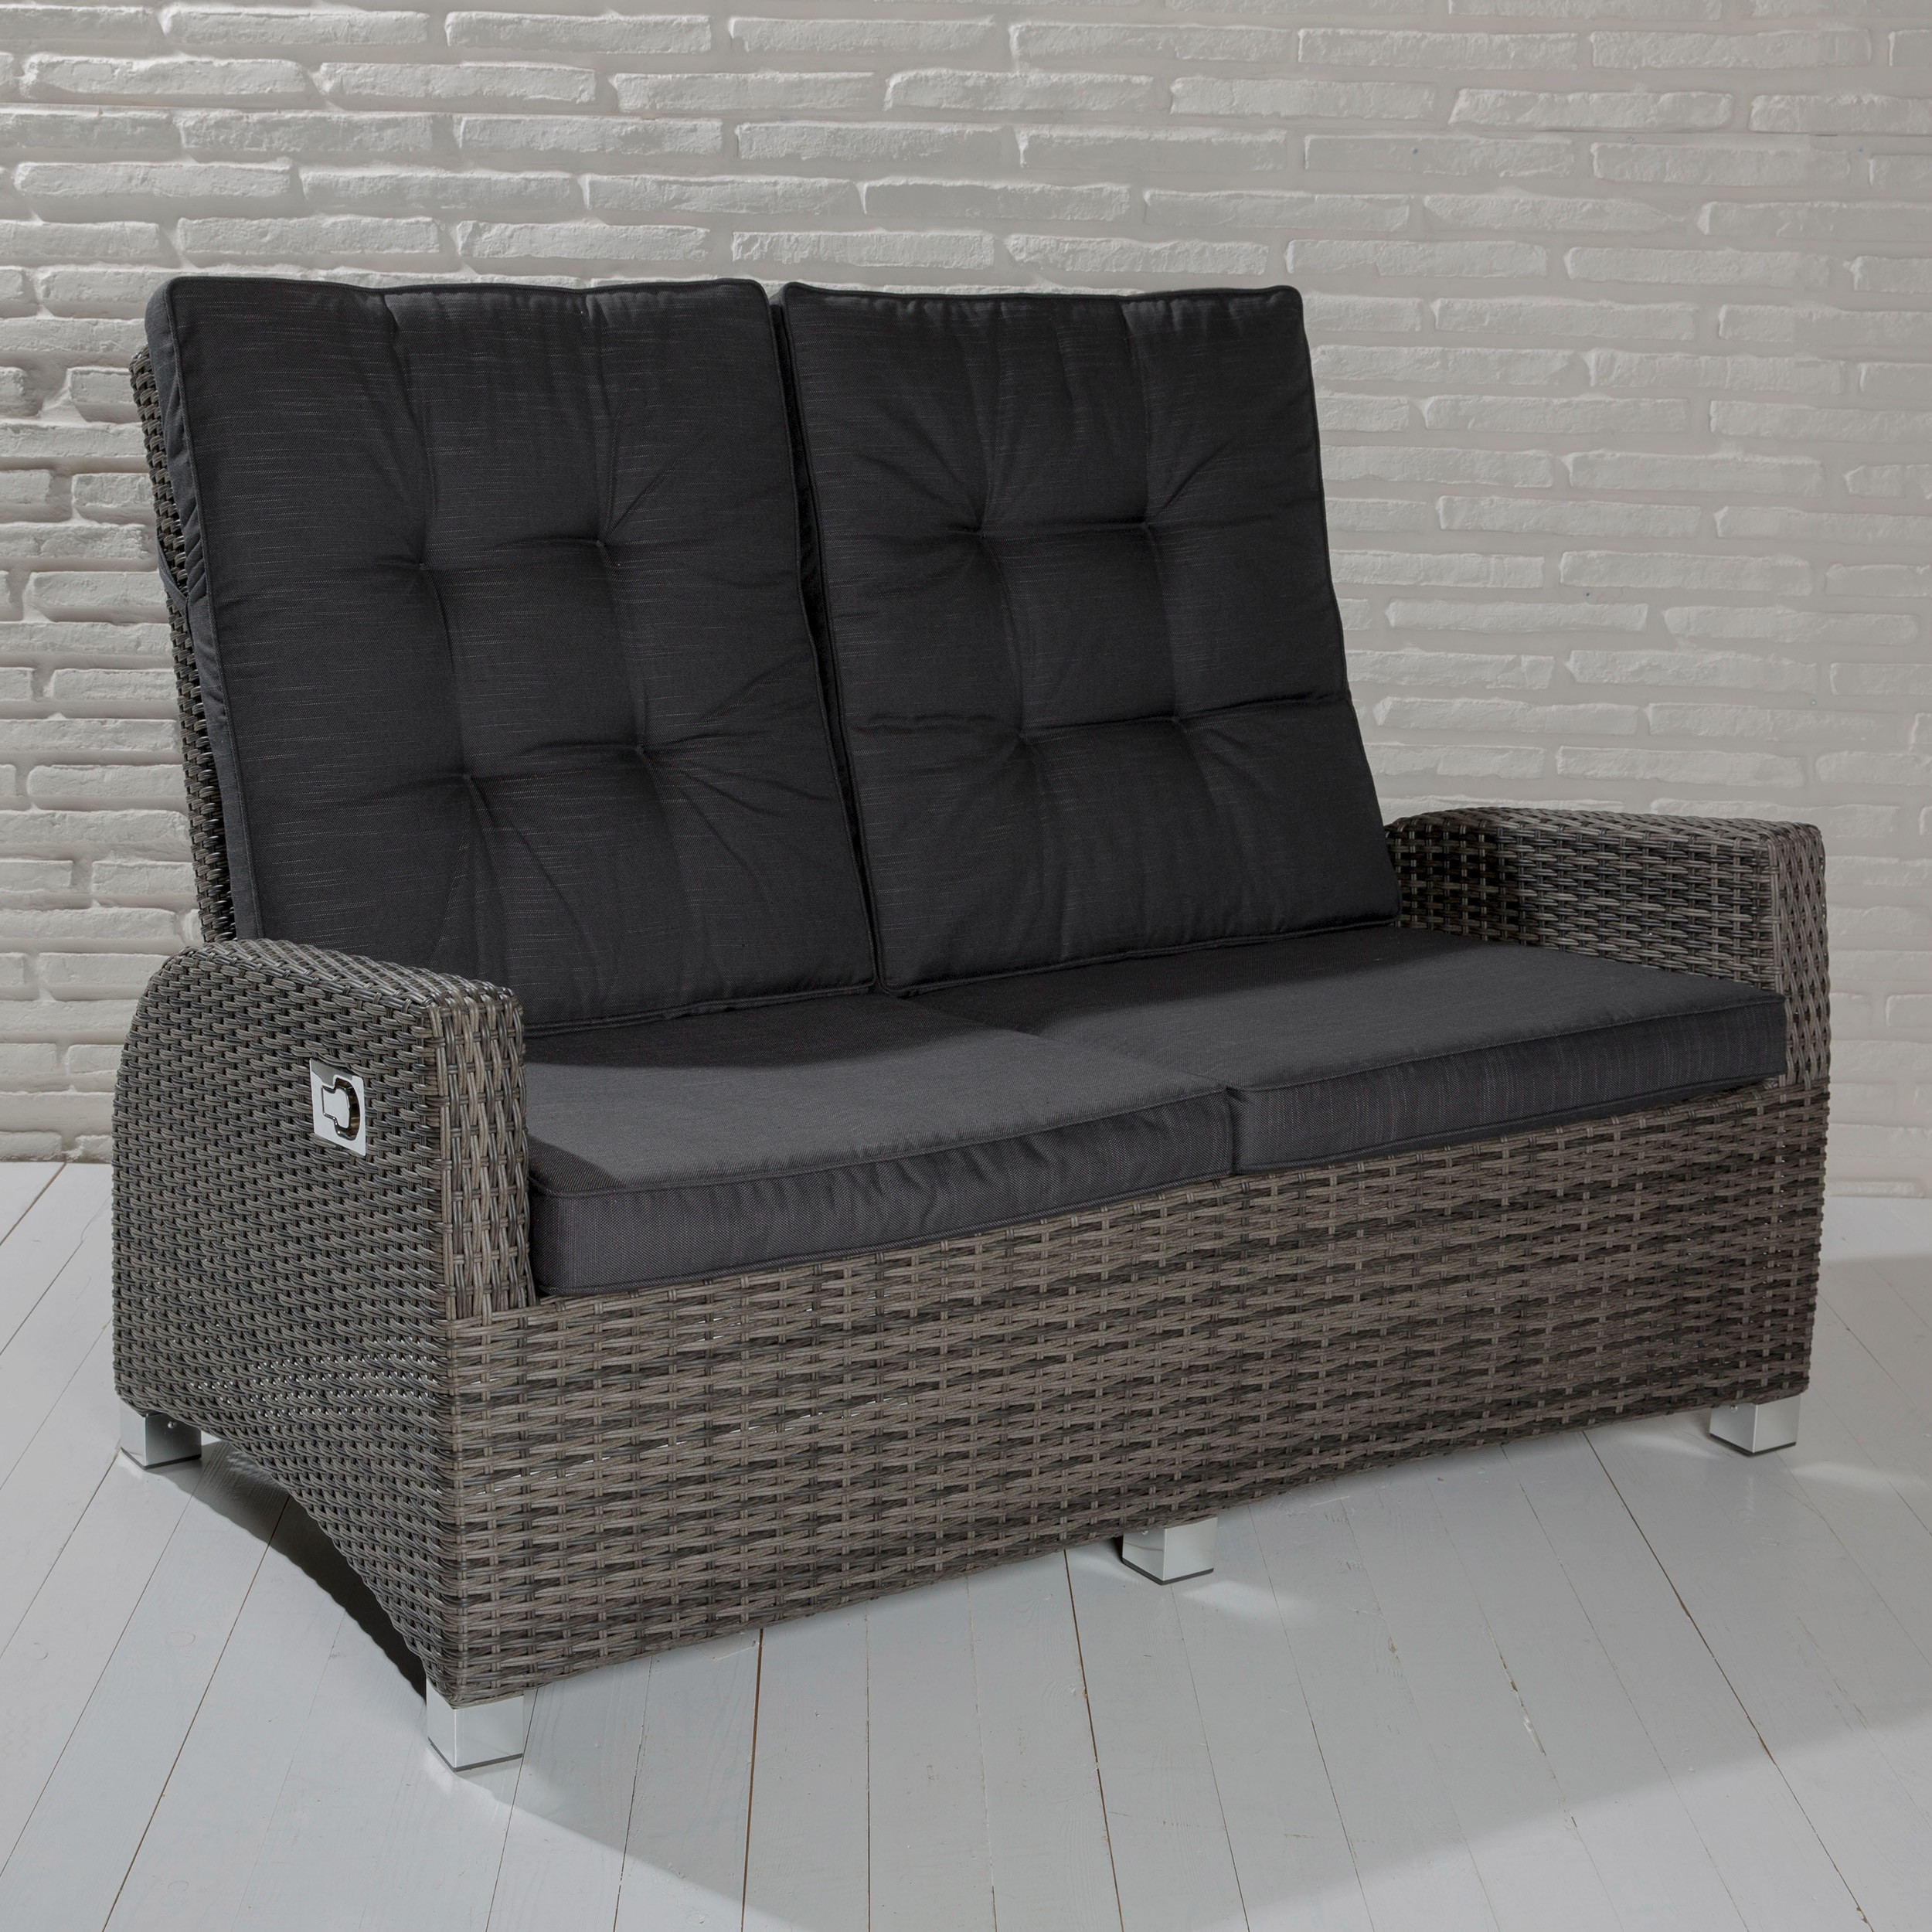 2 sitzer gartensofa barcelona grau mix loungesofa sofa gartenm bel living sofa ebay. Black Bedroom Furniture Sets. Home Design Ideas